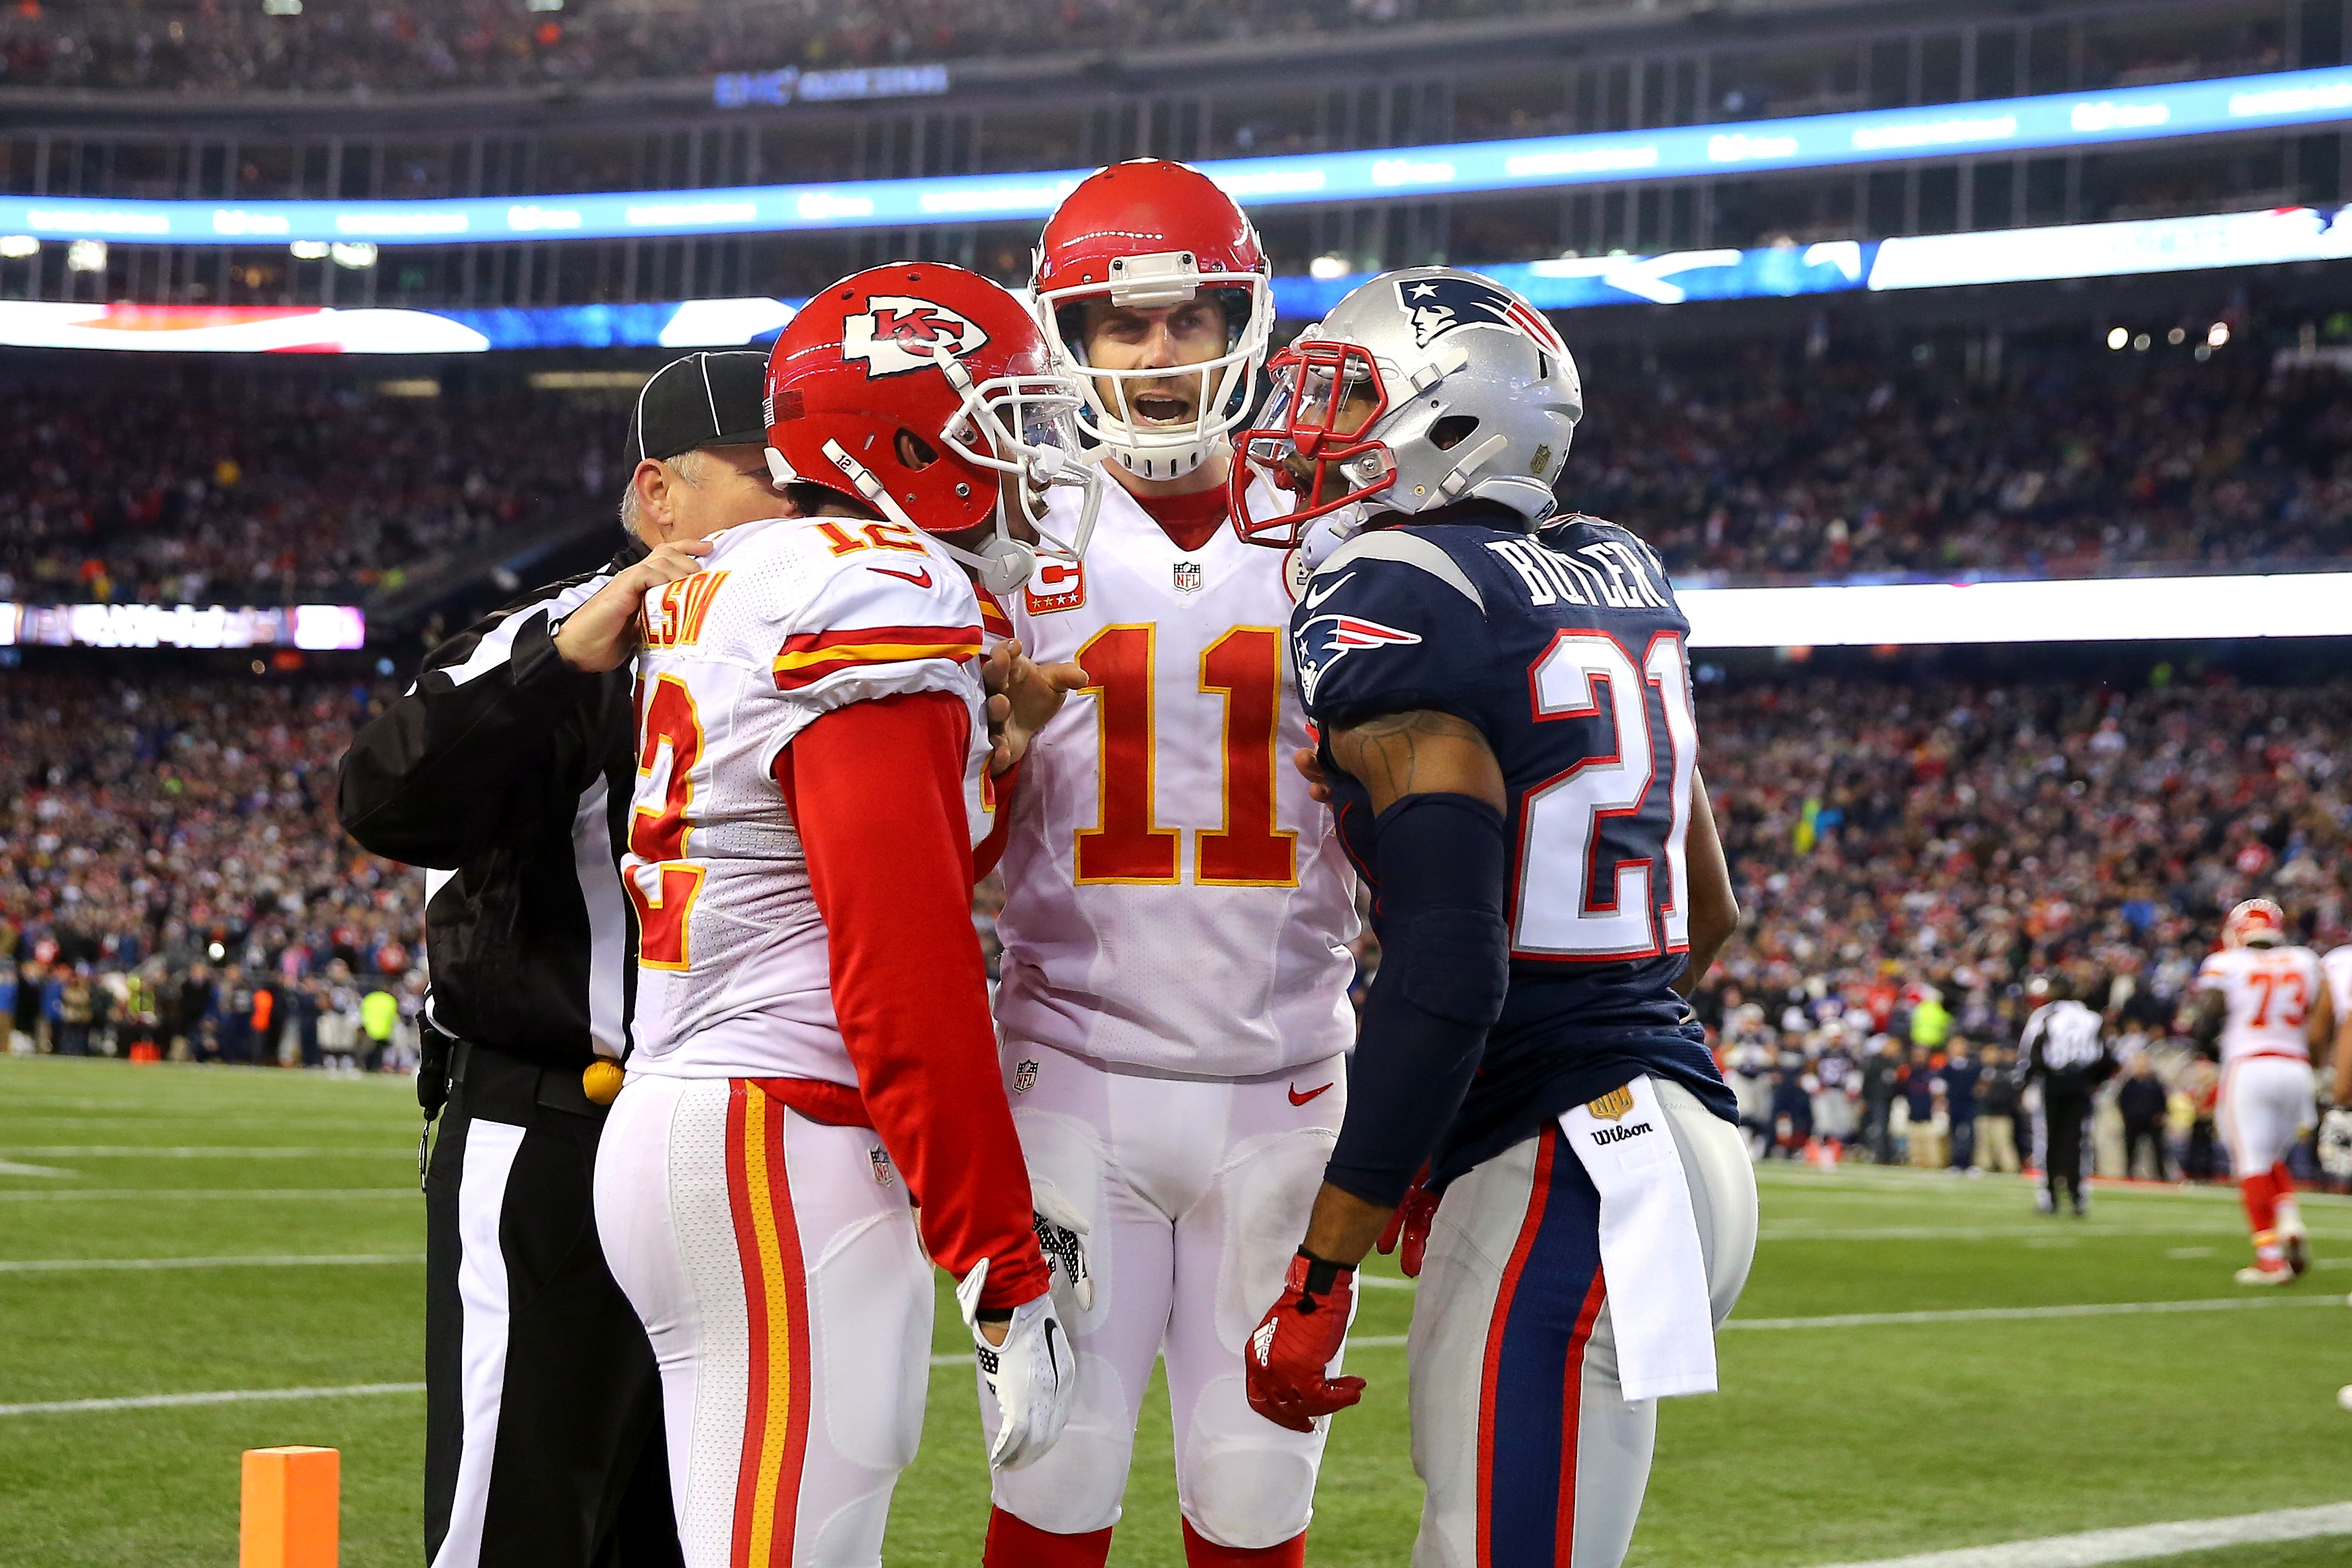 Arrowheadlines: Kansas City Chiefs News 11/26 - Arrowhead Pride